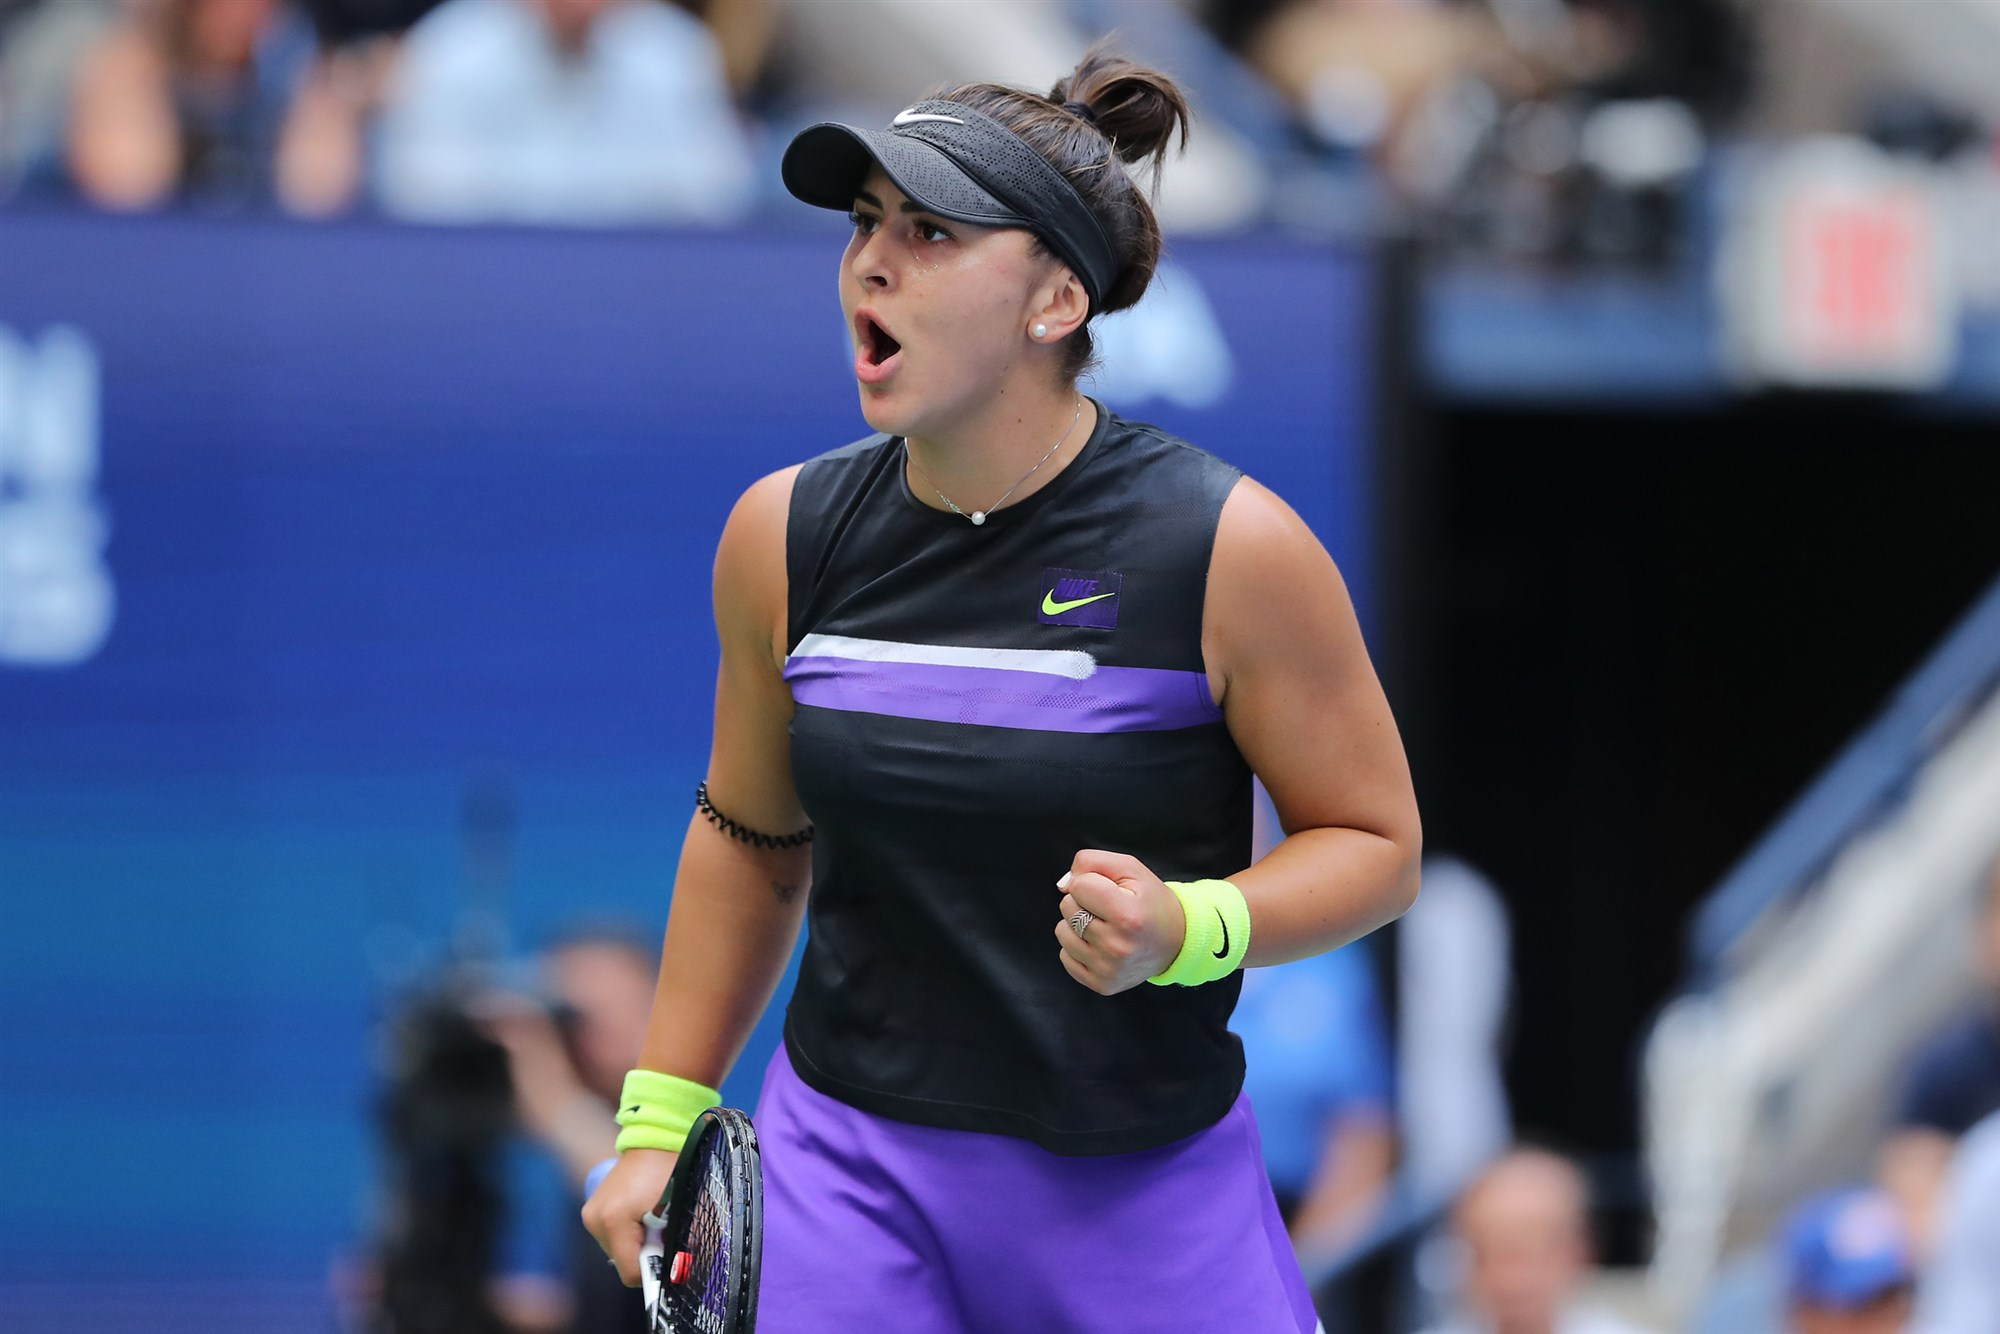 Serena Williams loses U.S. Open to Bianca Andreescu, a 19-year-old Canadian